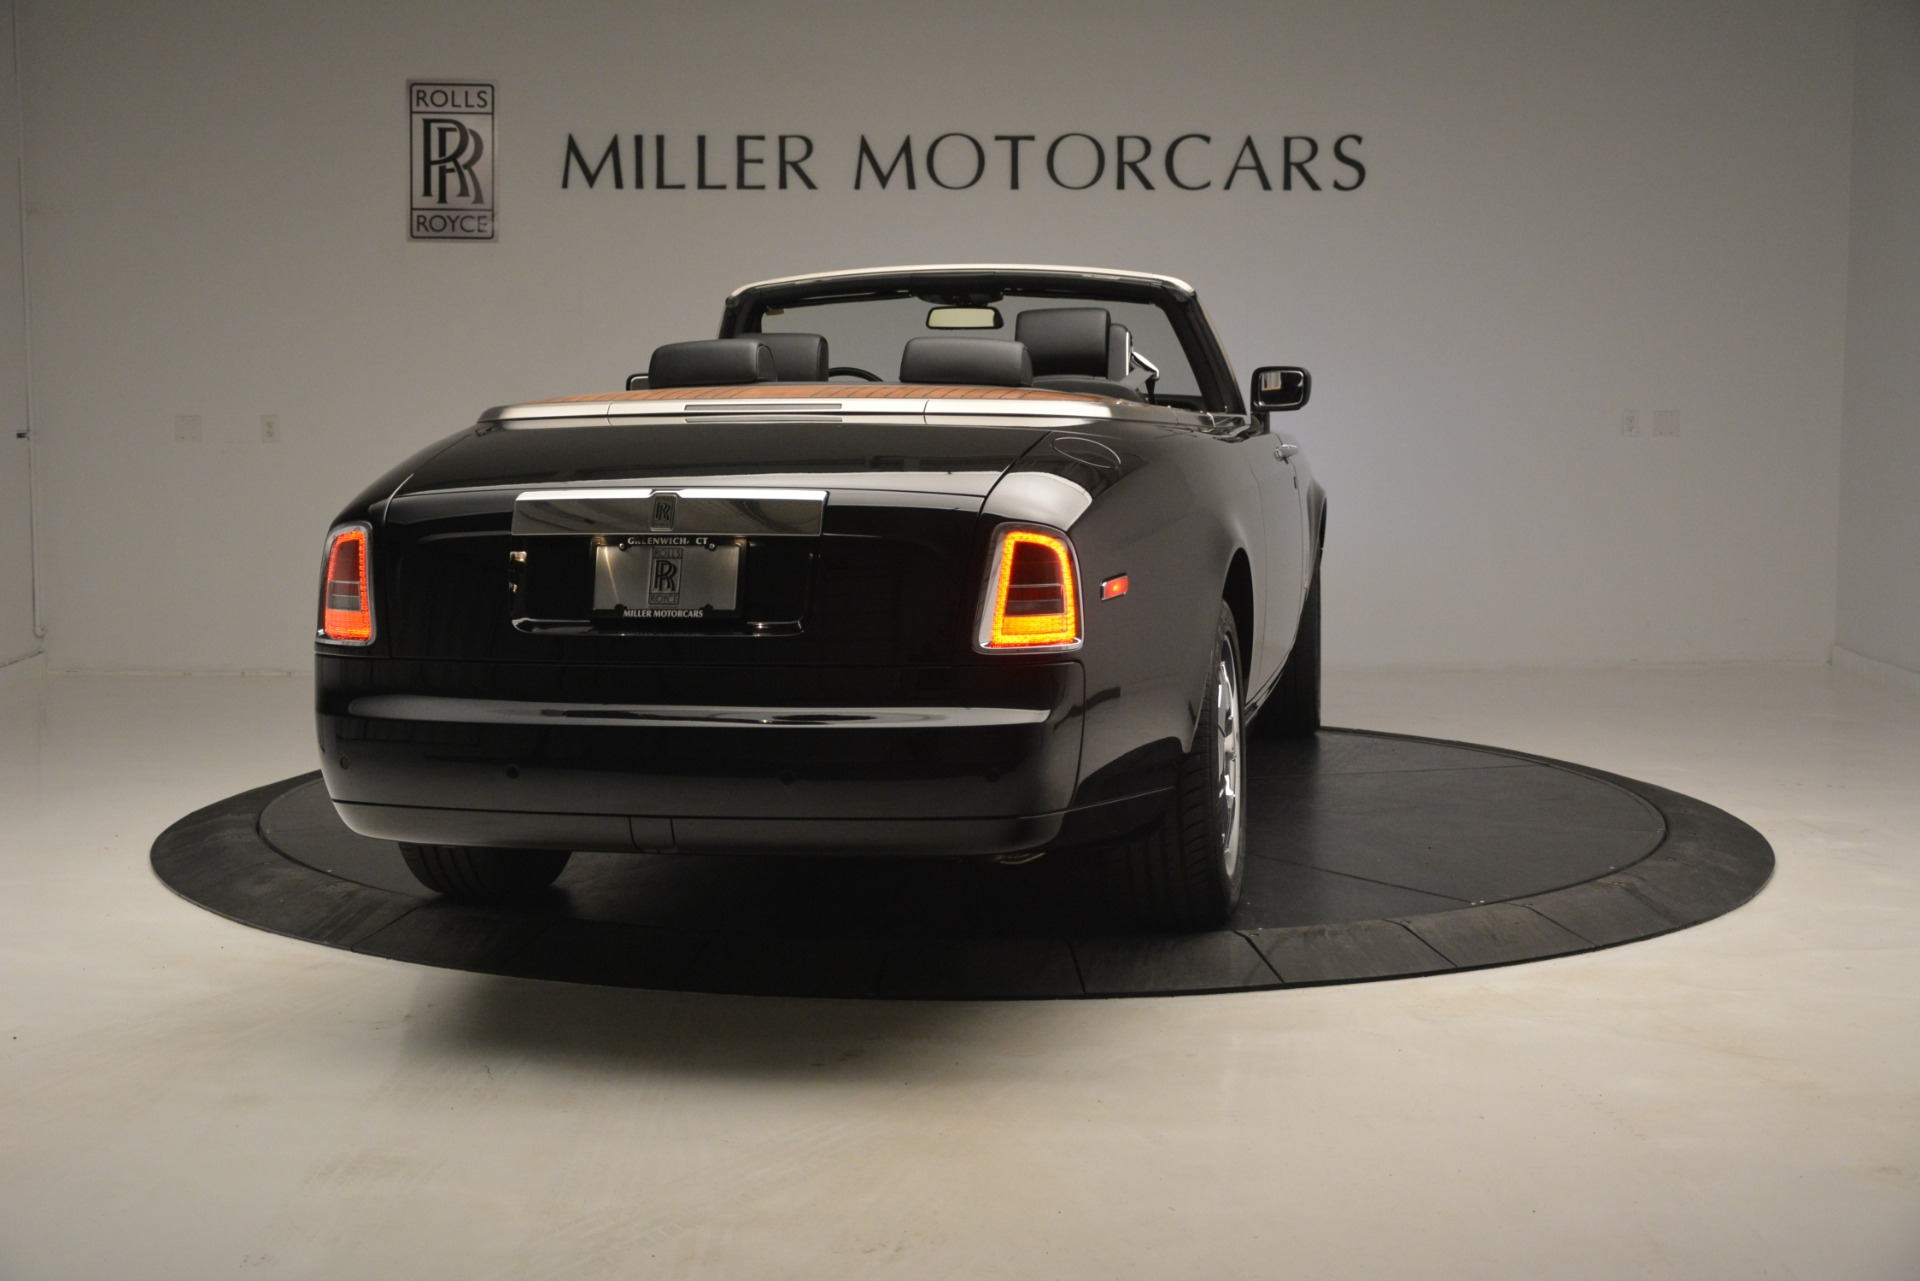 Used 2008 Rolls-Royce Phantom Drophead Coupe  For Sale In Westport, CT 3000_p10